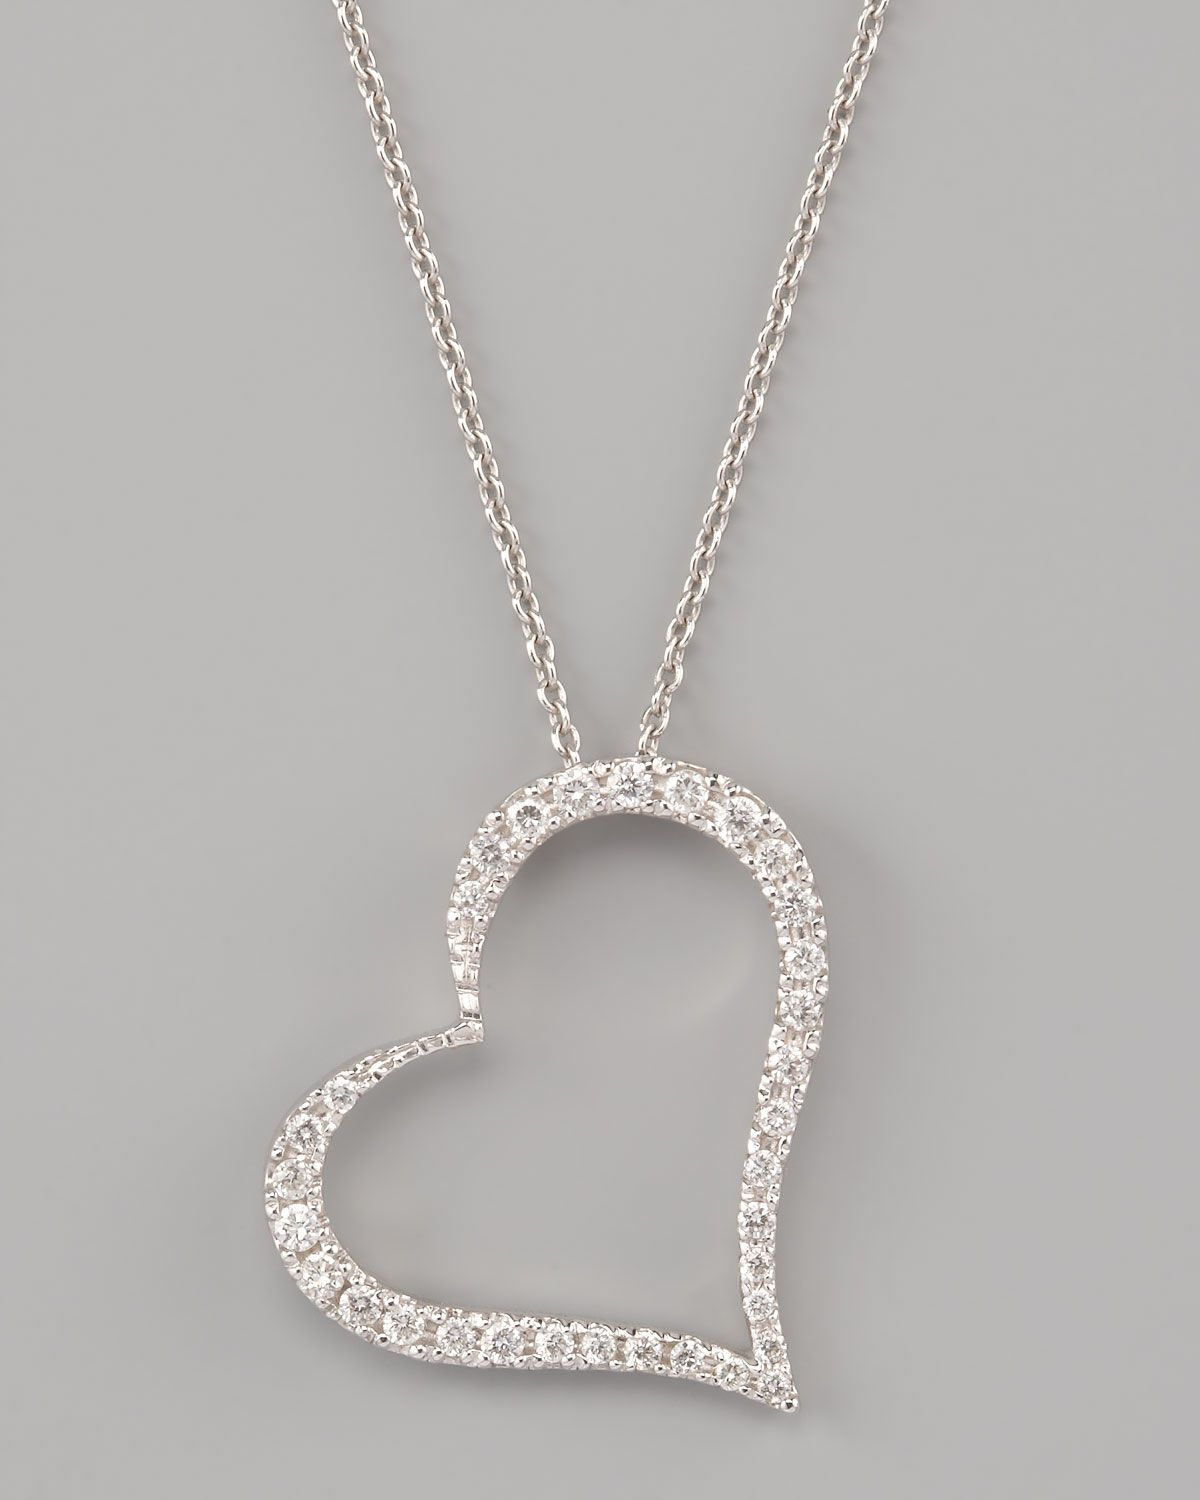 Roberto Coin Pave Heart Necklace - Neiman Marcus